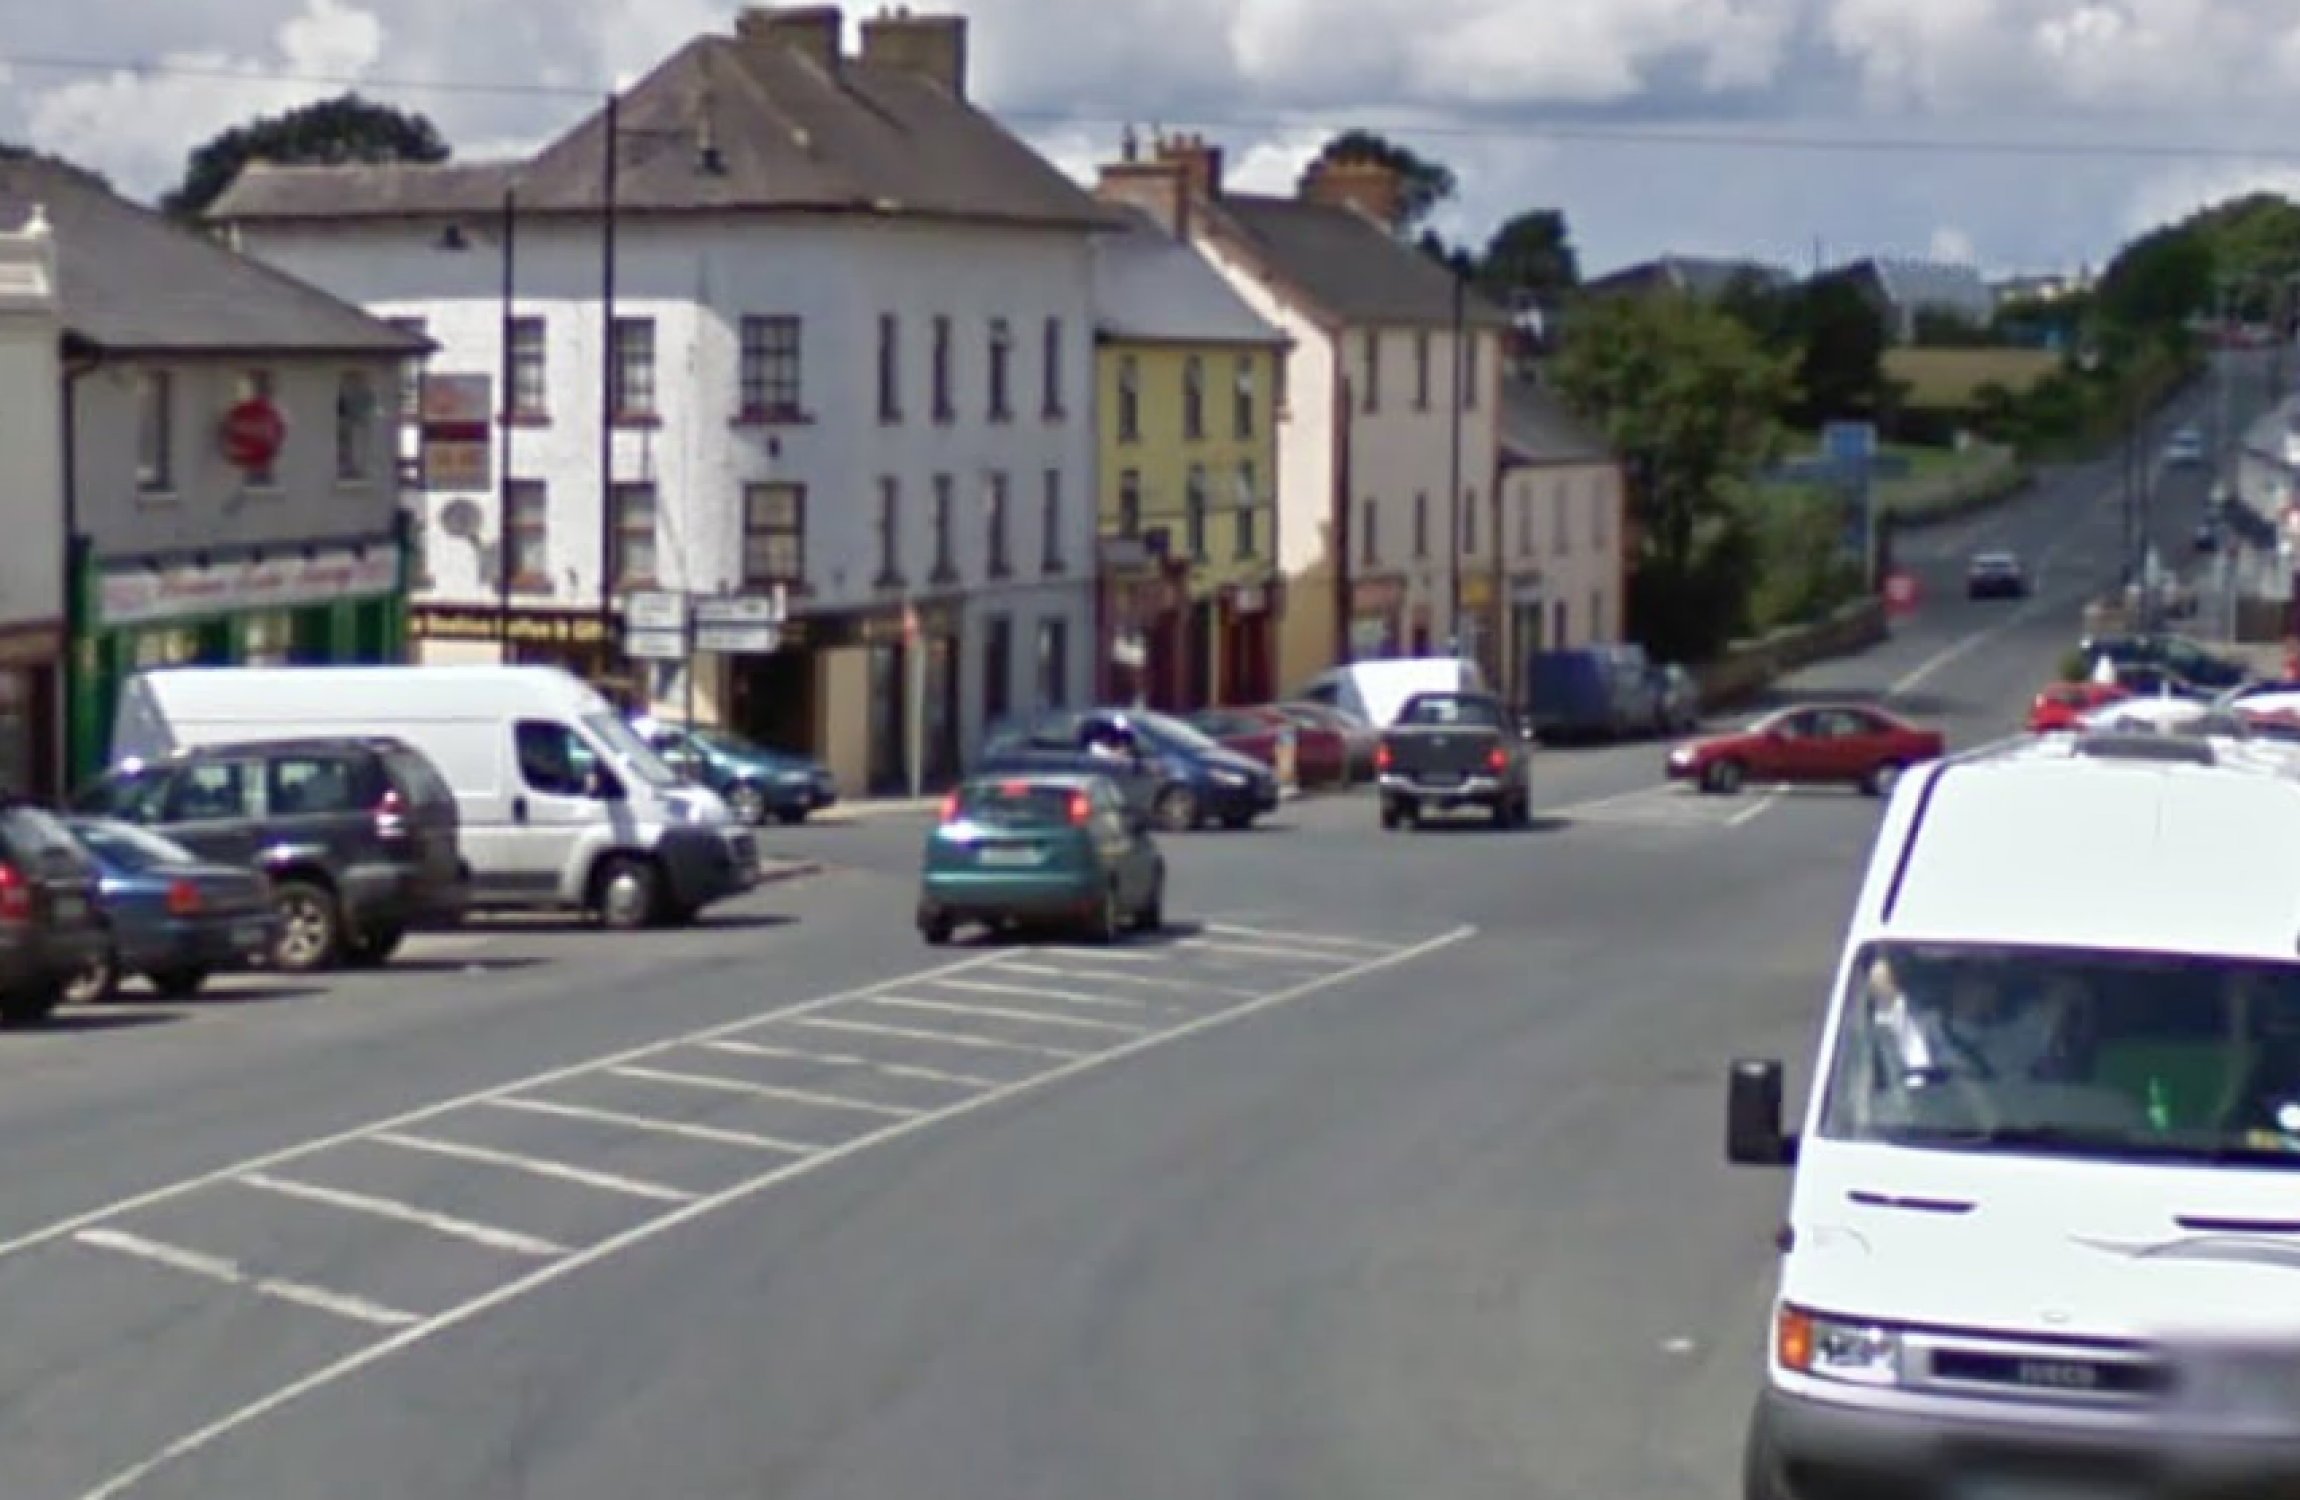 A man has died in Cavan after being stabbed